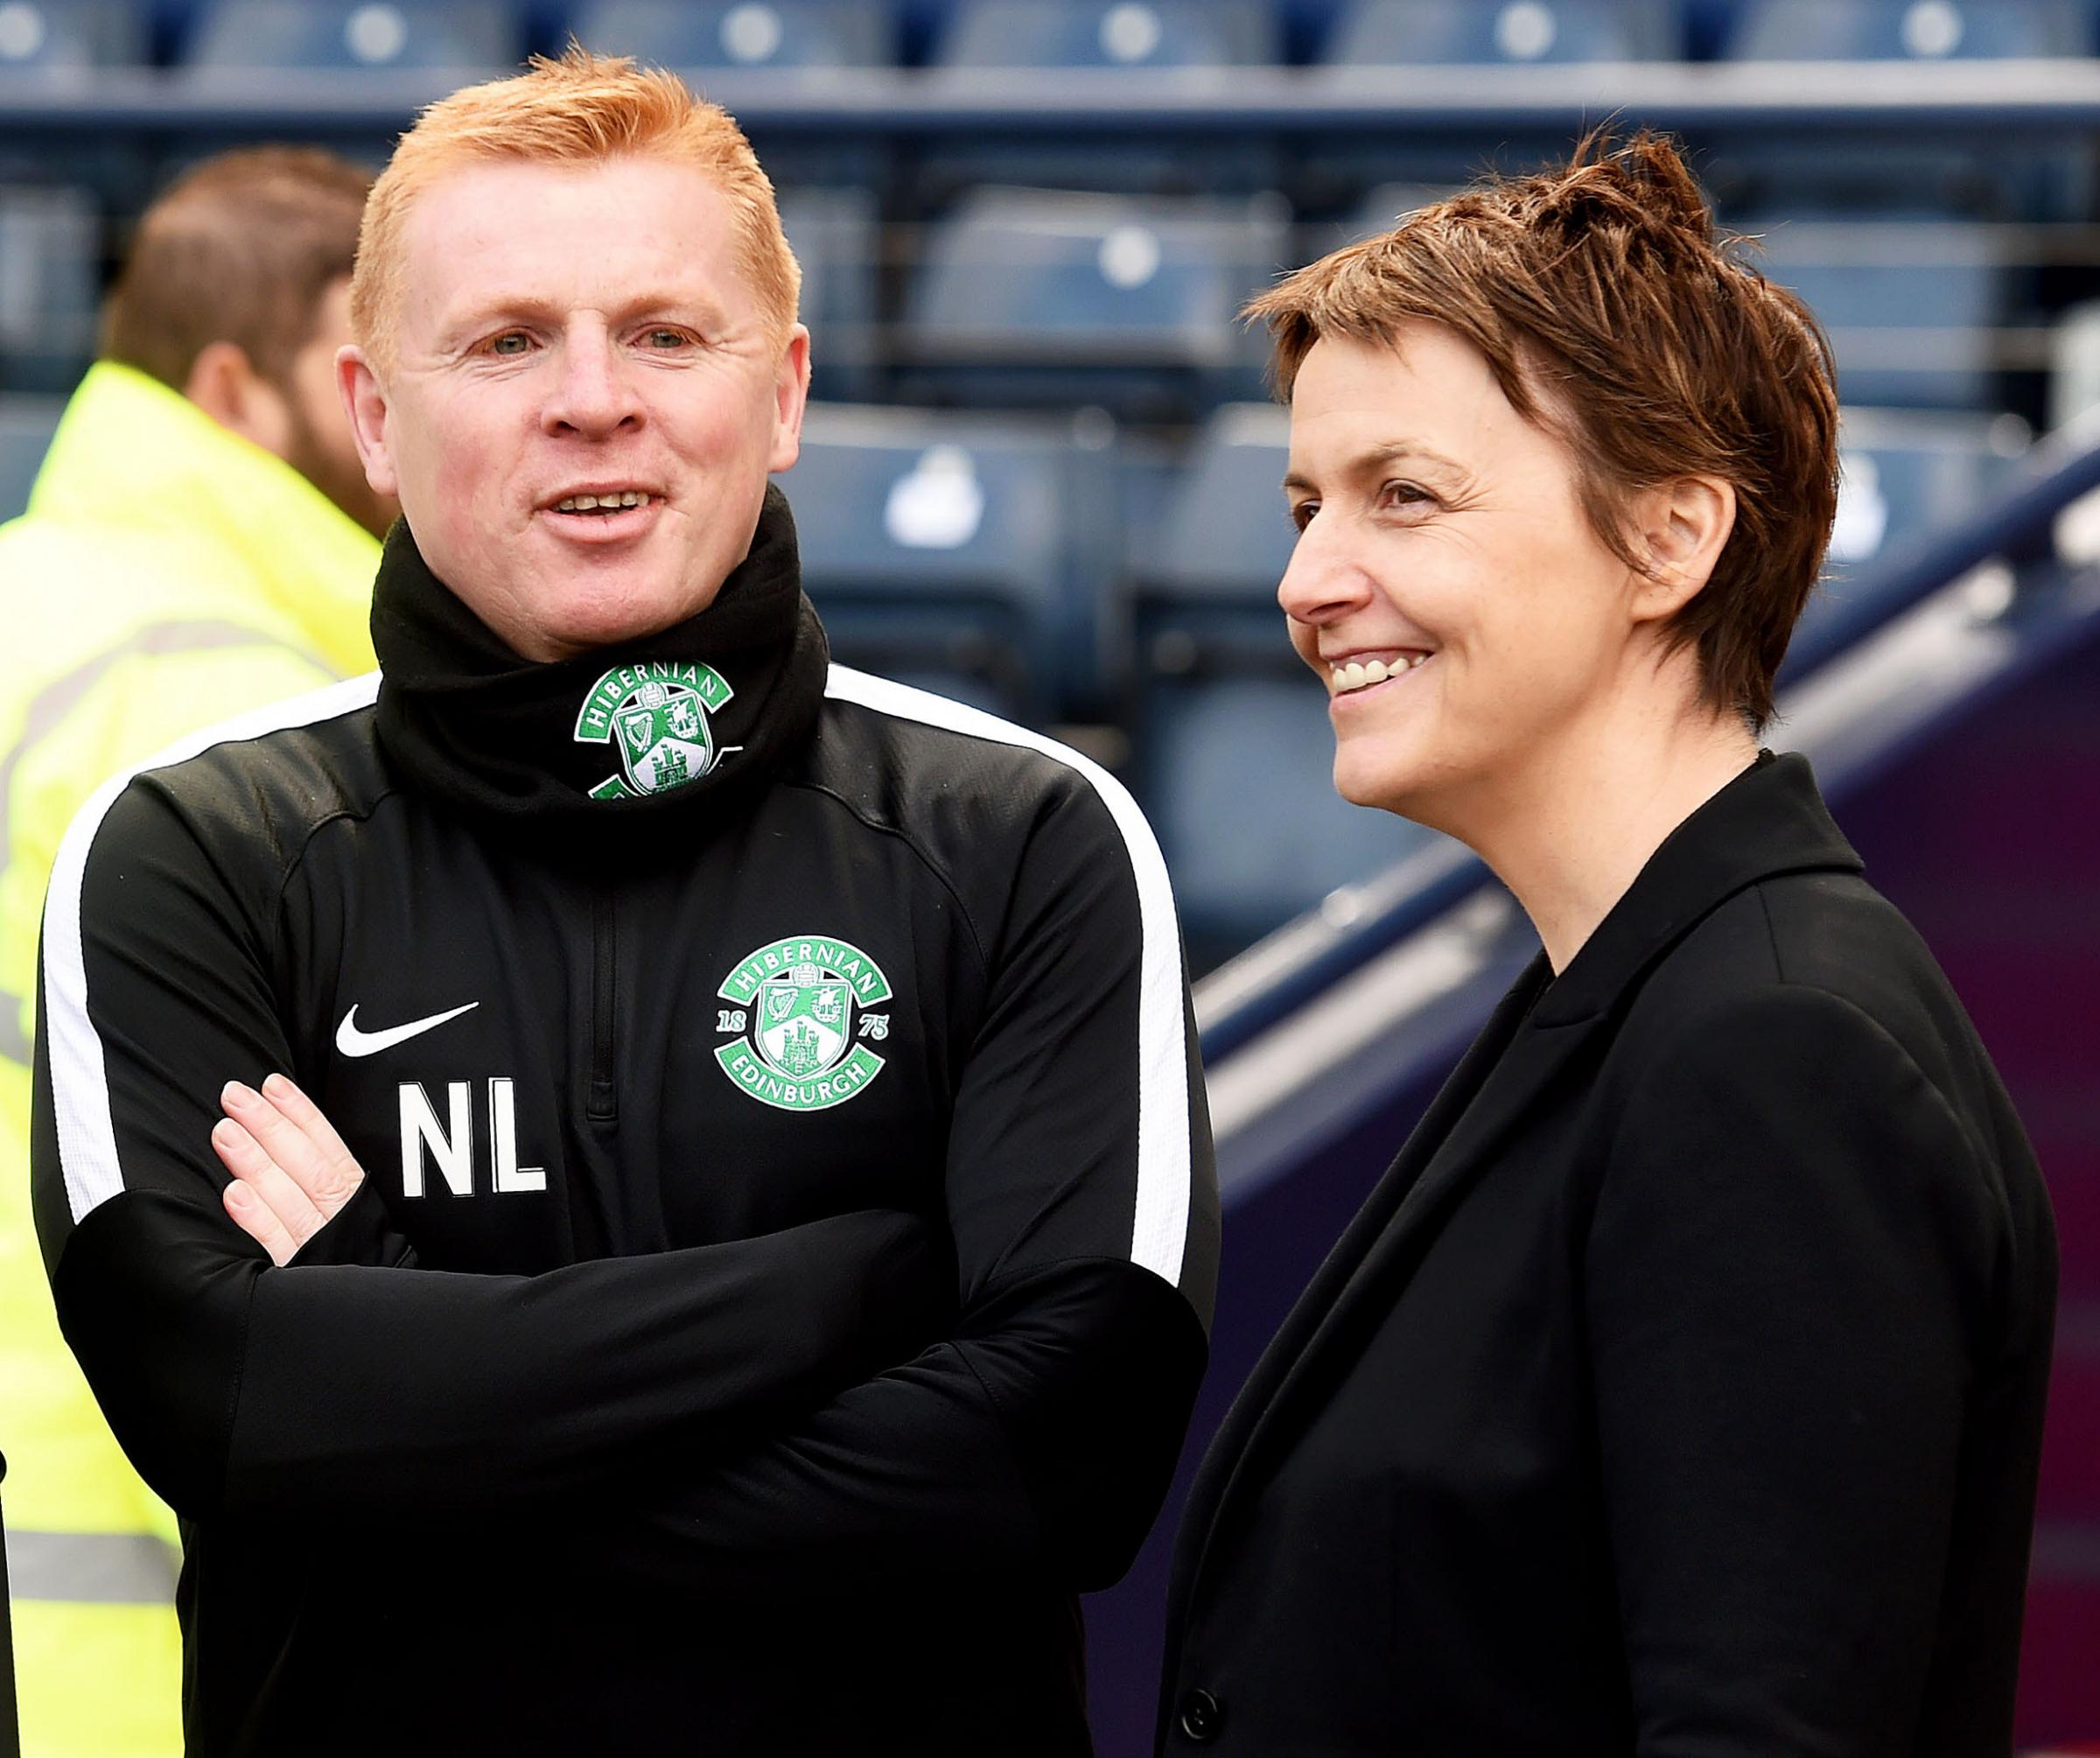 Hibs chief executive Leeann Dempster has declared there is no turmoil after Neil Lennon's departure